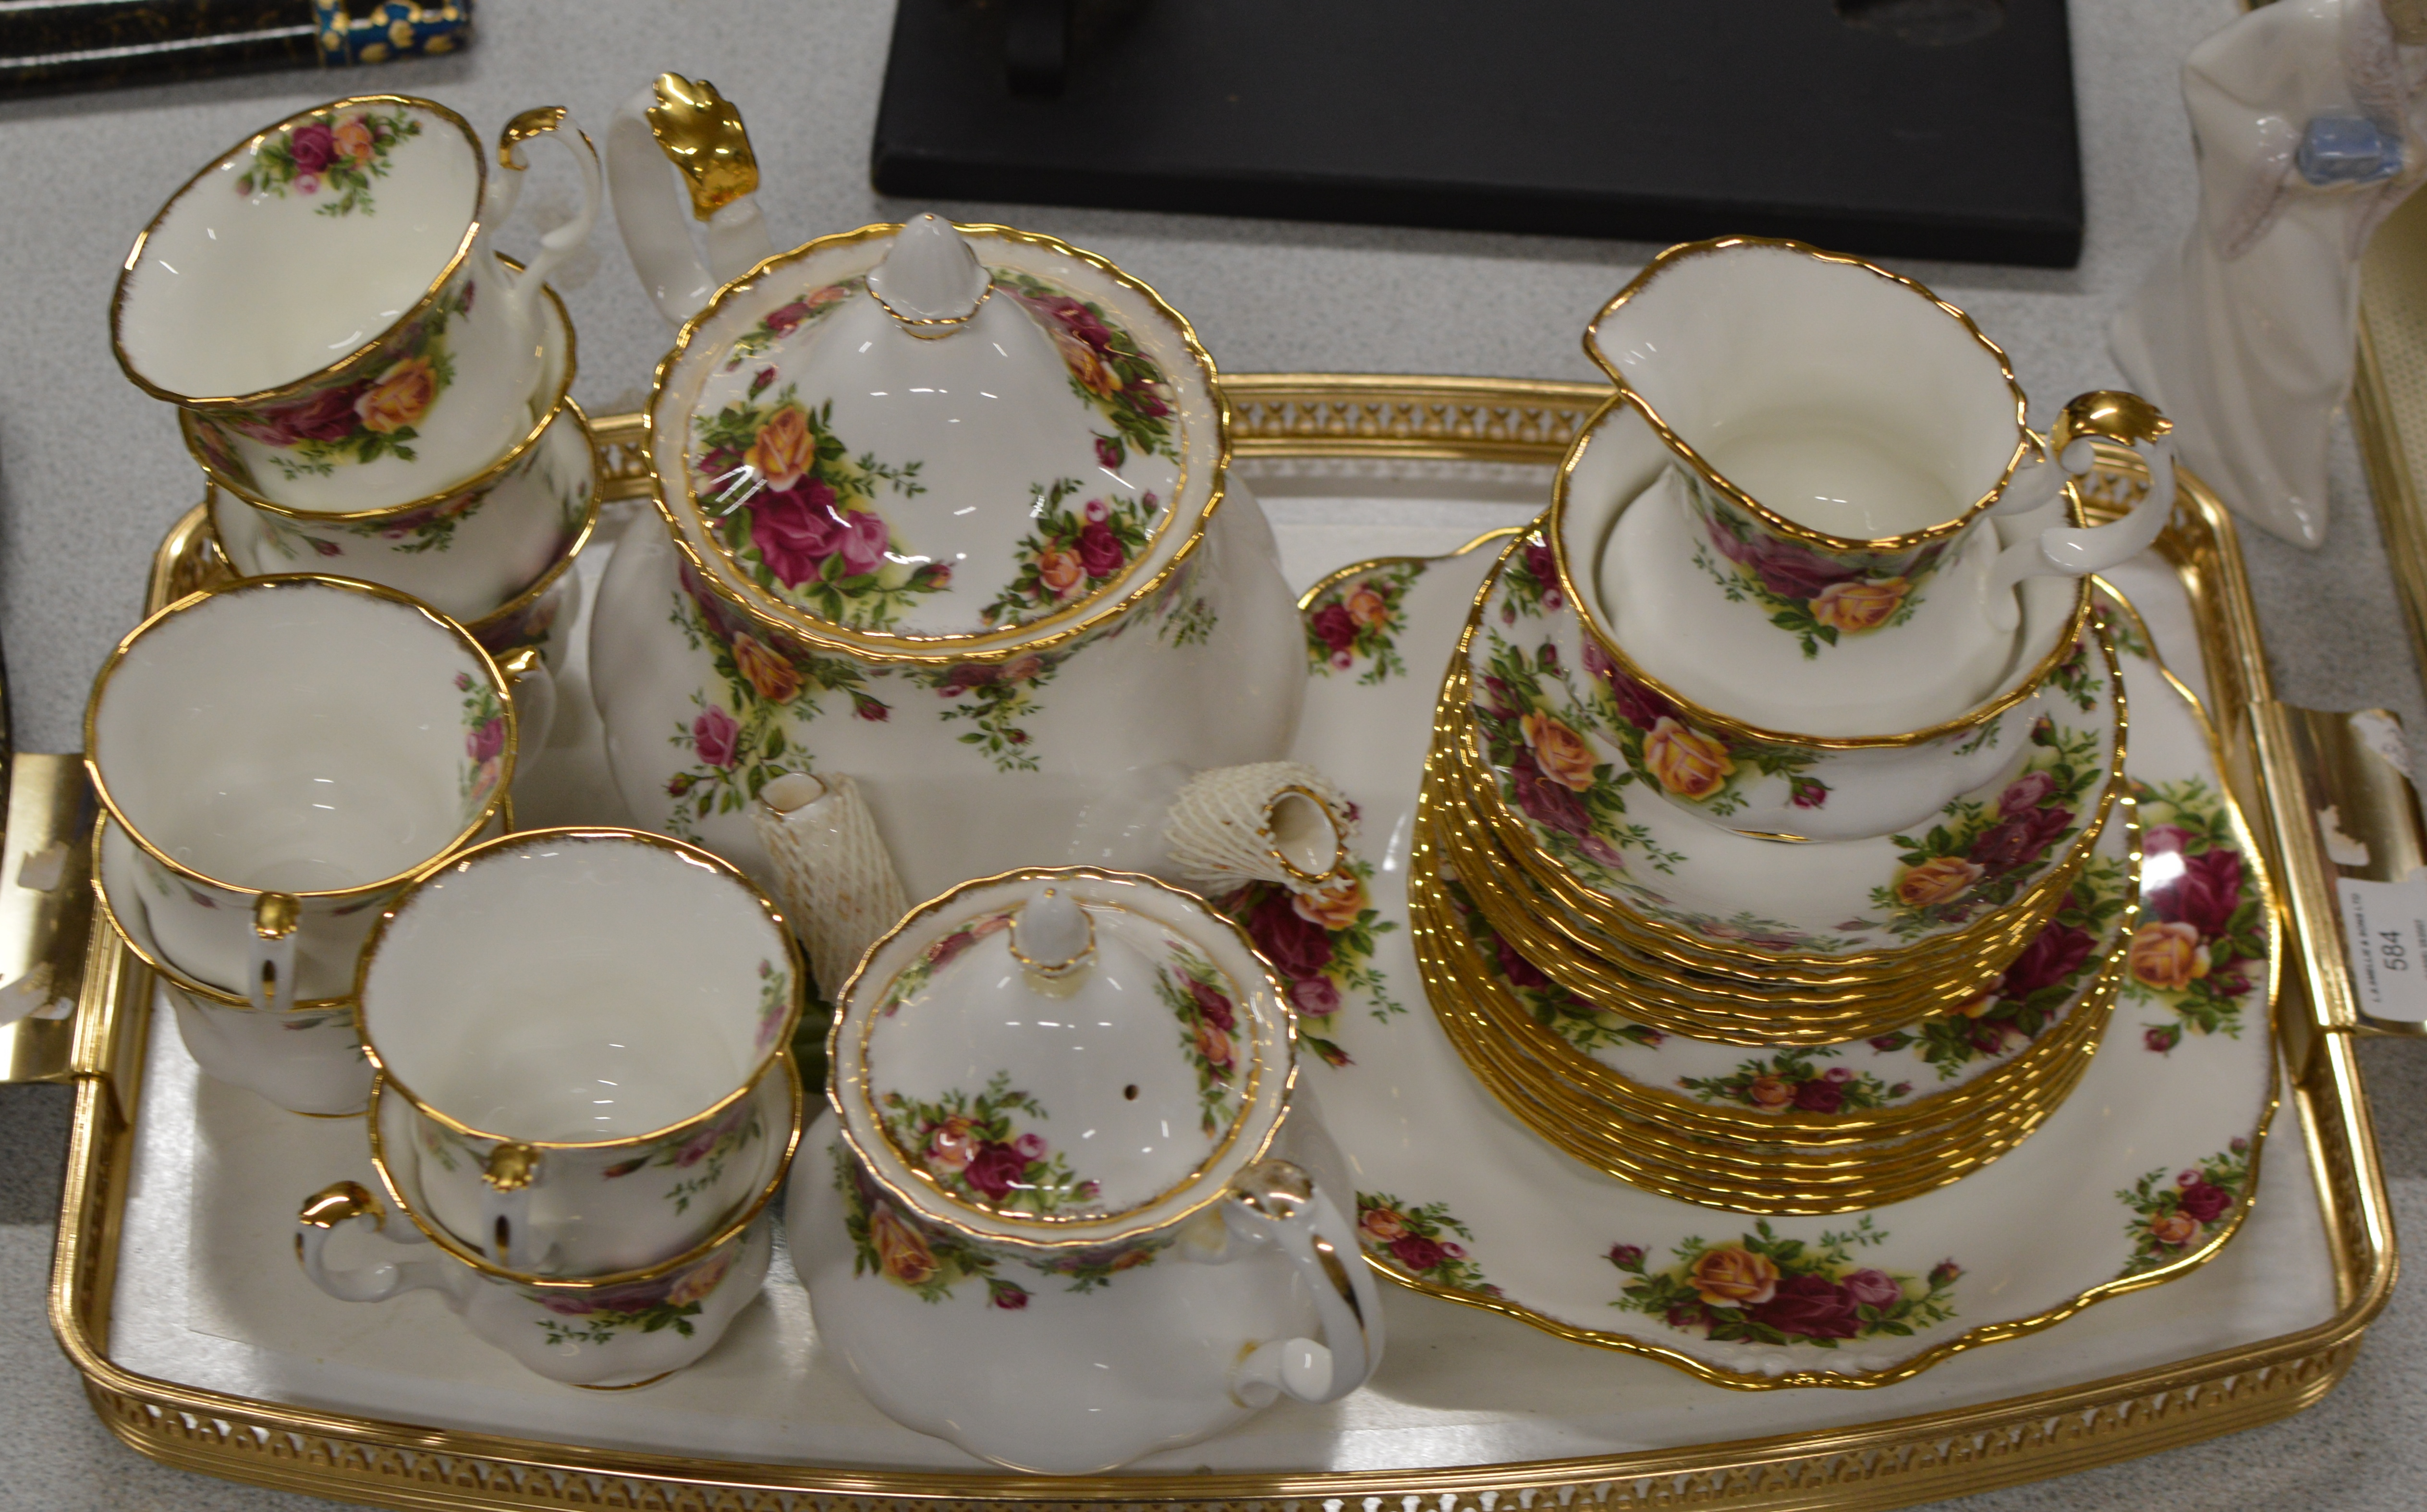 Lot 584 - HALF SET OF ROYAL ALBERT OLD COUNTRY ROSES TEA SET WITH 1 EXTRA CUP